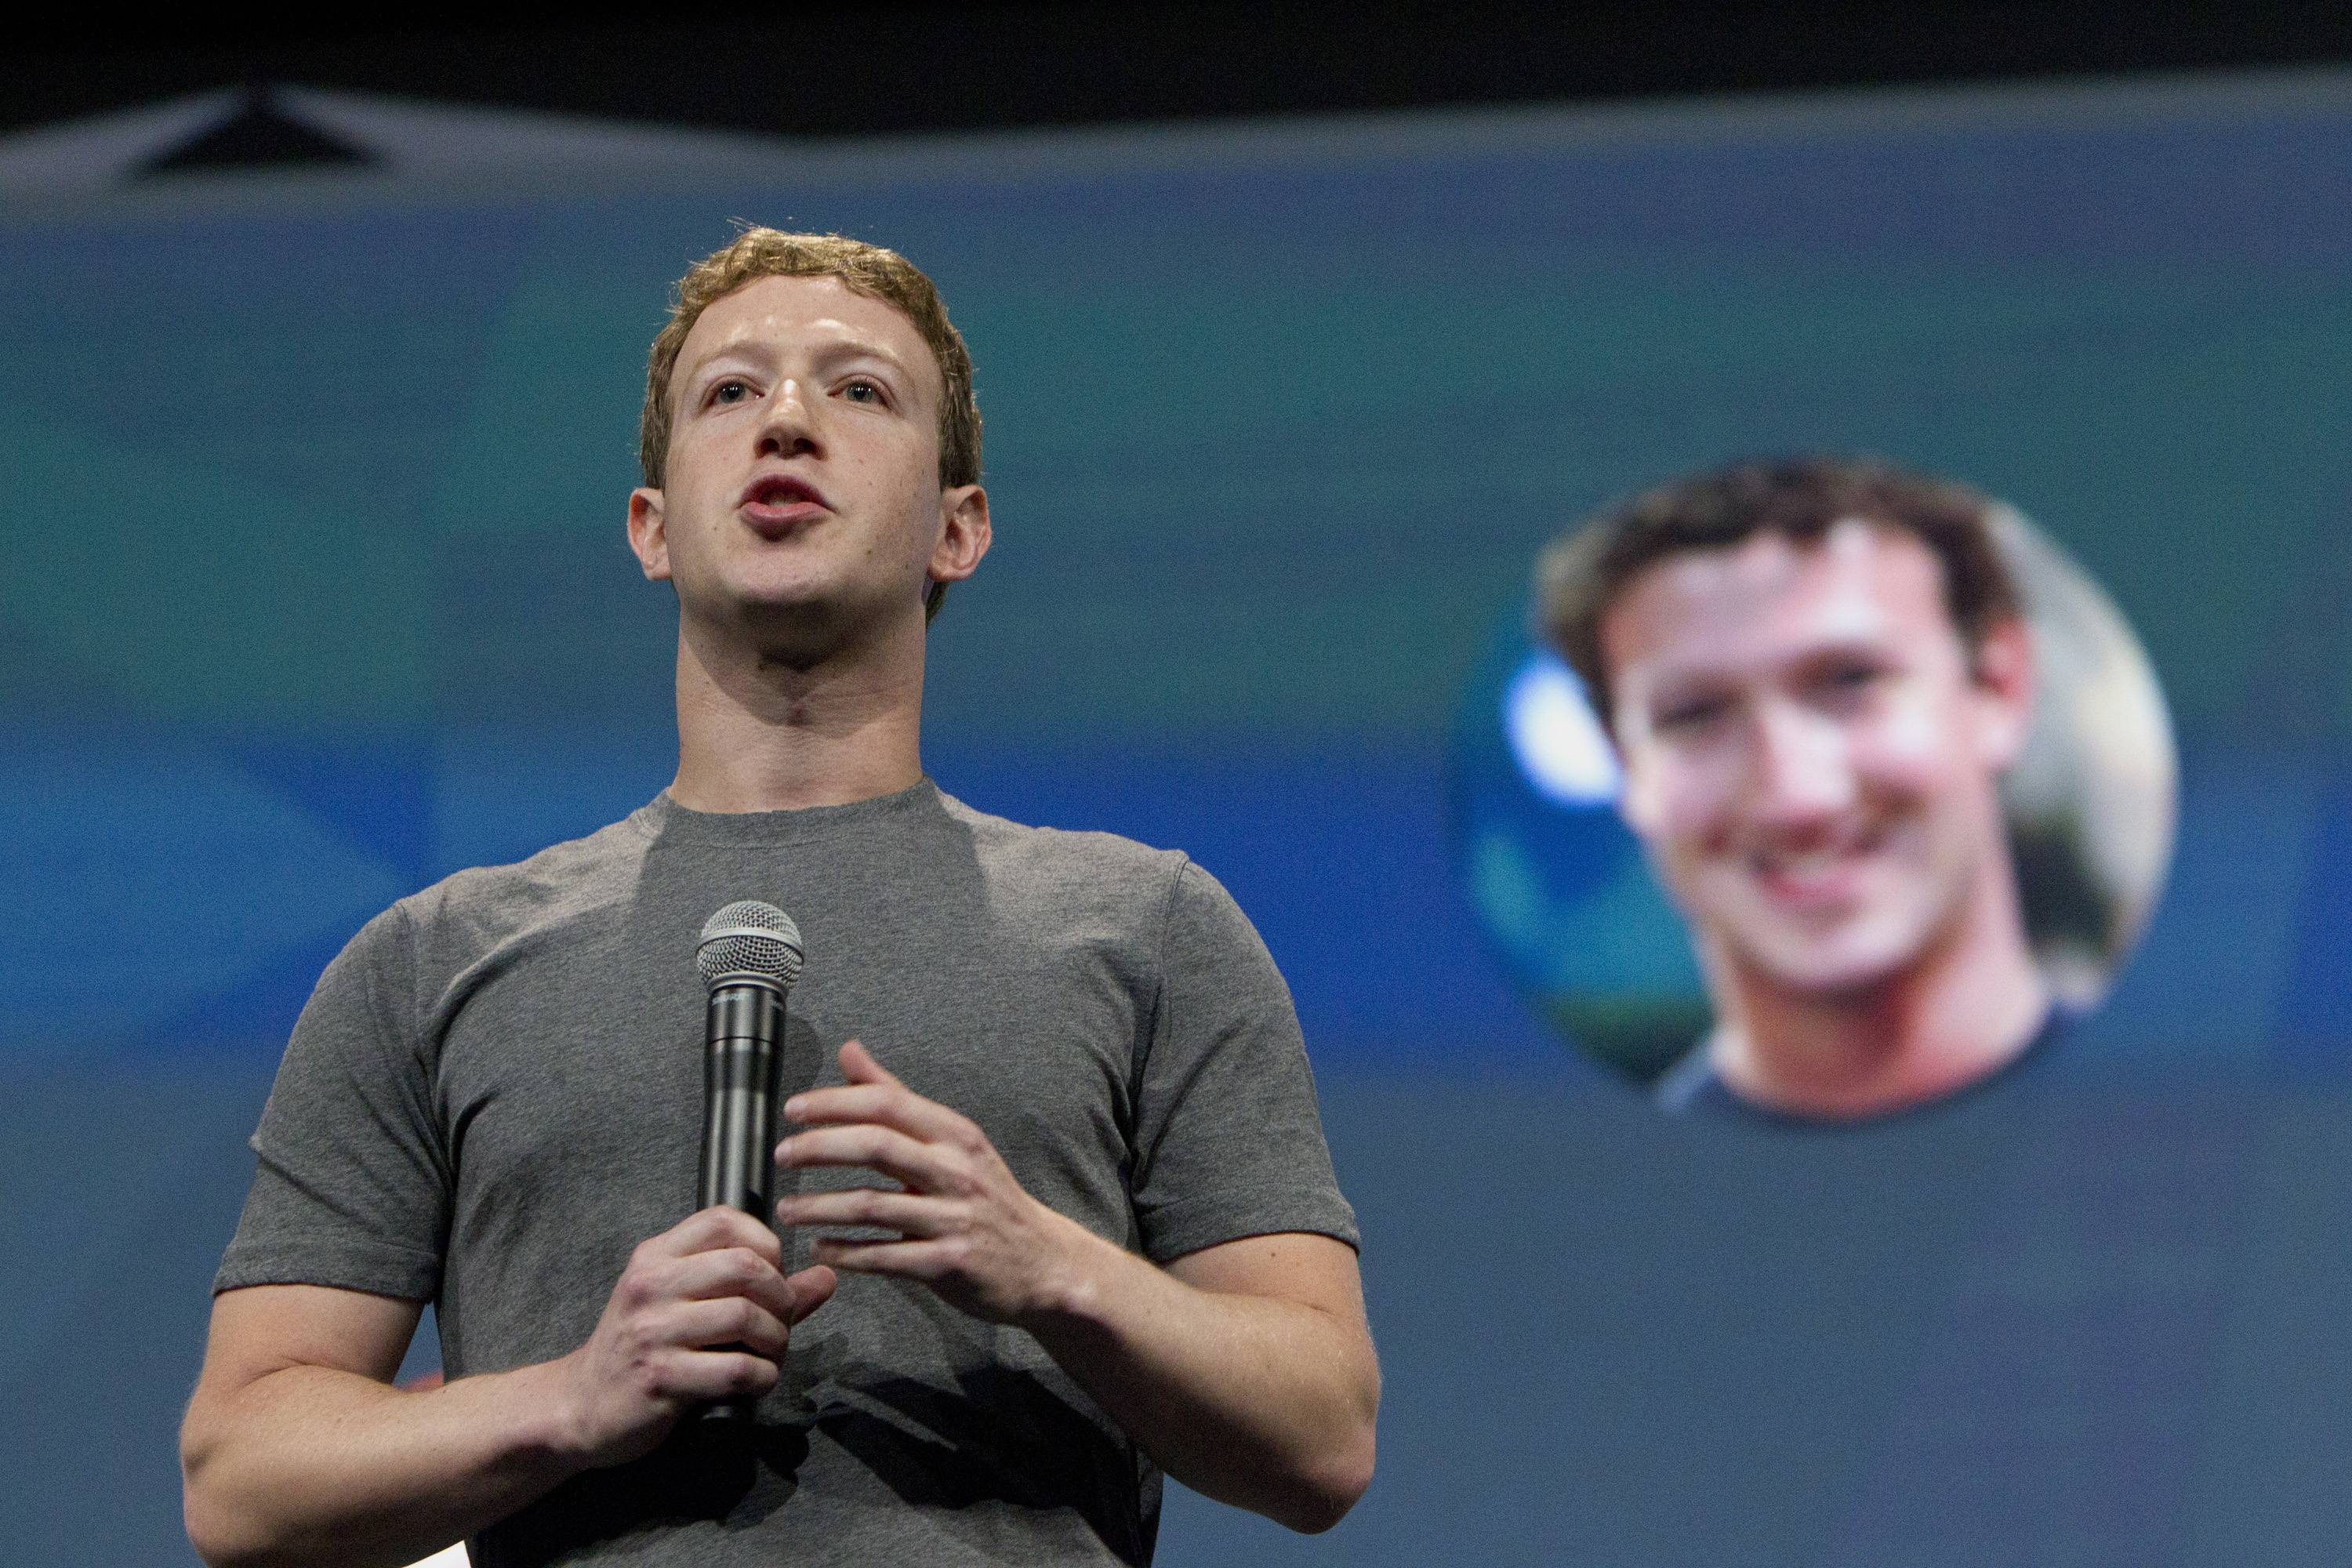 Mark Zuckerberg, chief executive officer of Facebook Inc.,The U.S. should investigate whether Facebook Inc.'s tracking of users' Web browsing activities violates an agreement with the government to ensure people's privacy, an advocacy group said.